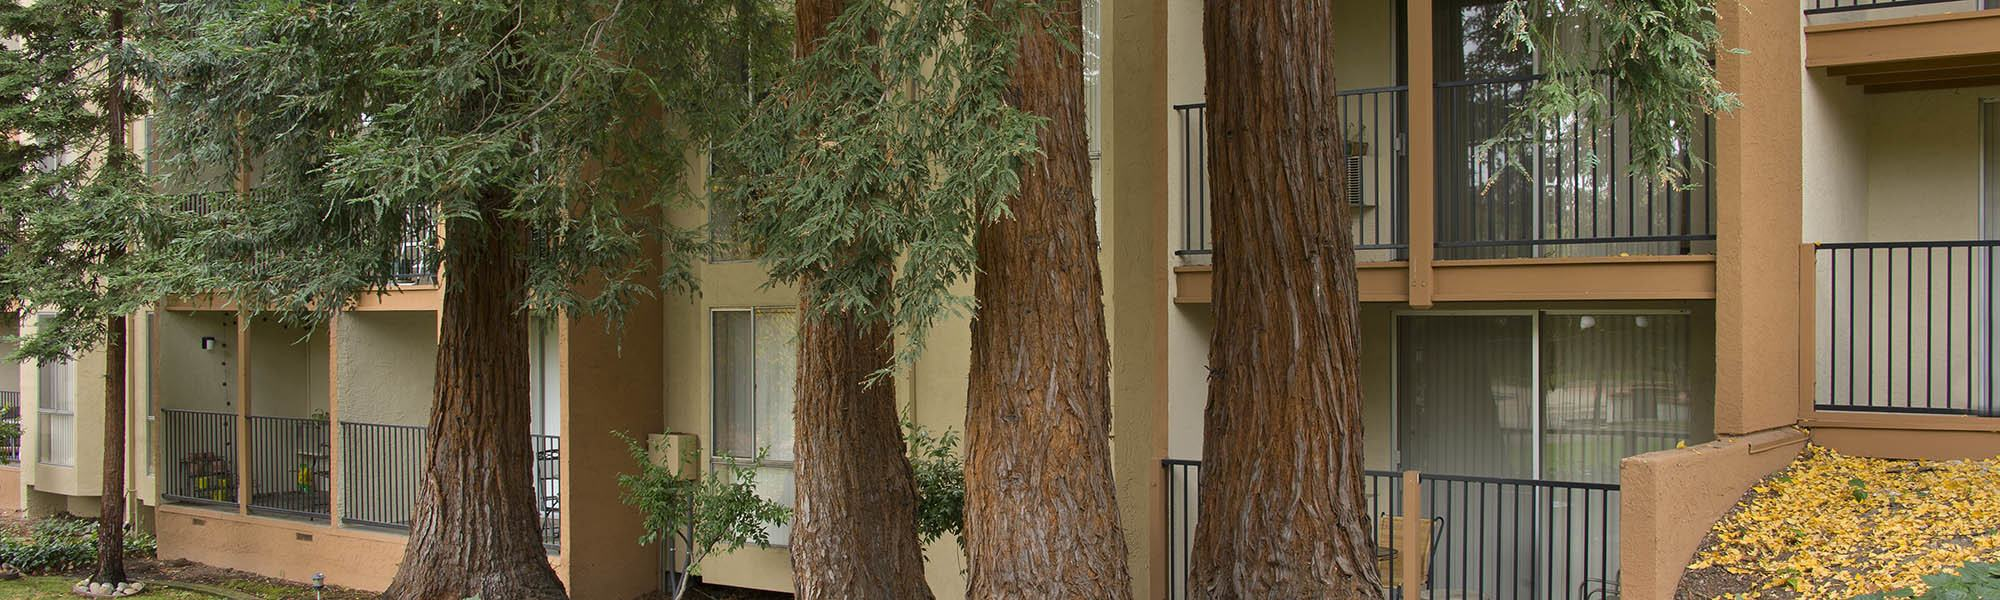 Learn about our neighborhood at Trinity House Apartment Homes in Walnut Creek, CA on our website